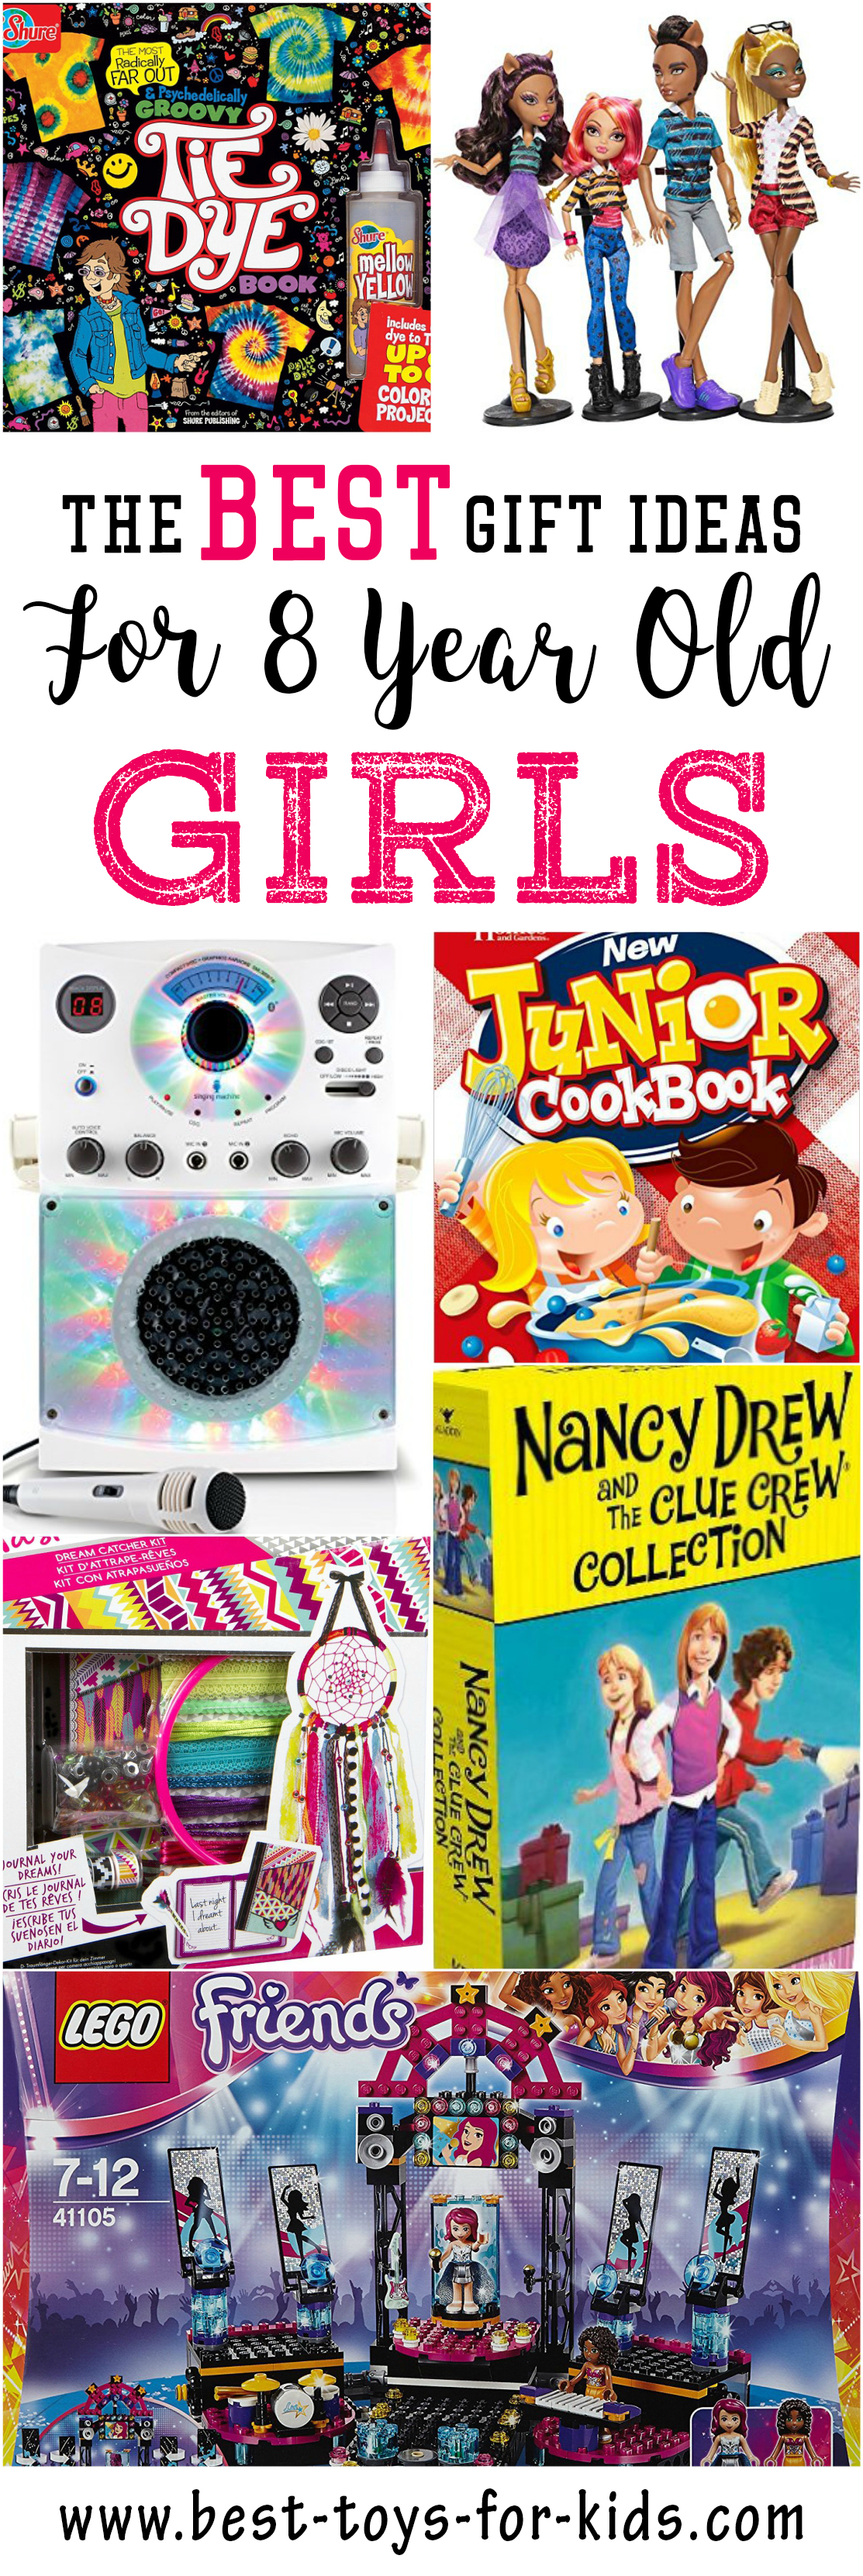 Best Gift Ideas for 8 Year Old Girls | 8 year old ...